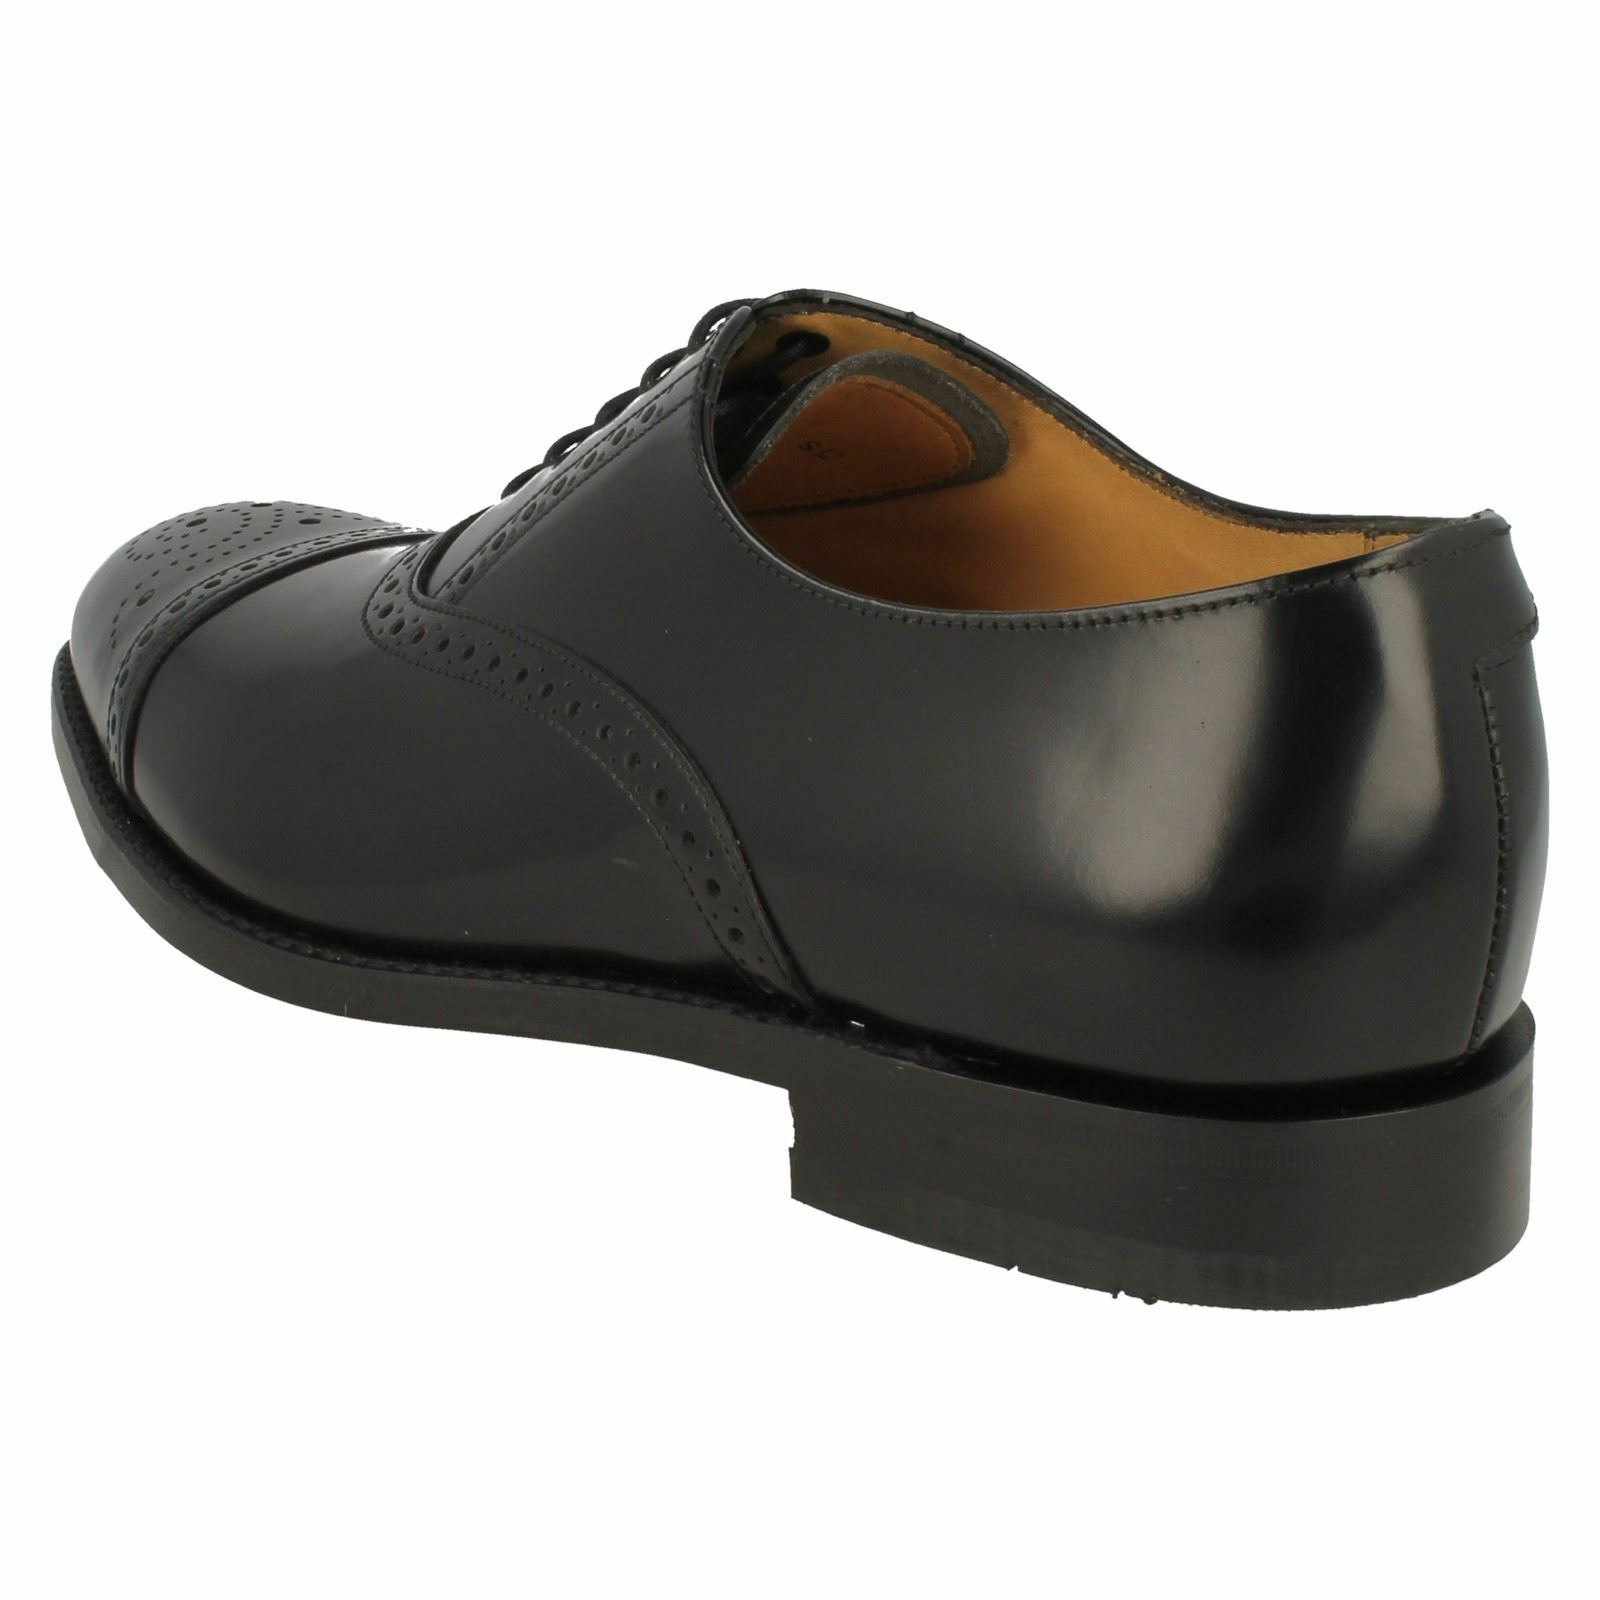 Mens Oban black leather semi brogue lace up shoe by Loake  £155.00